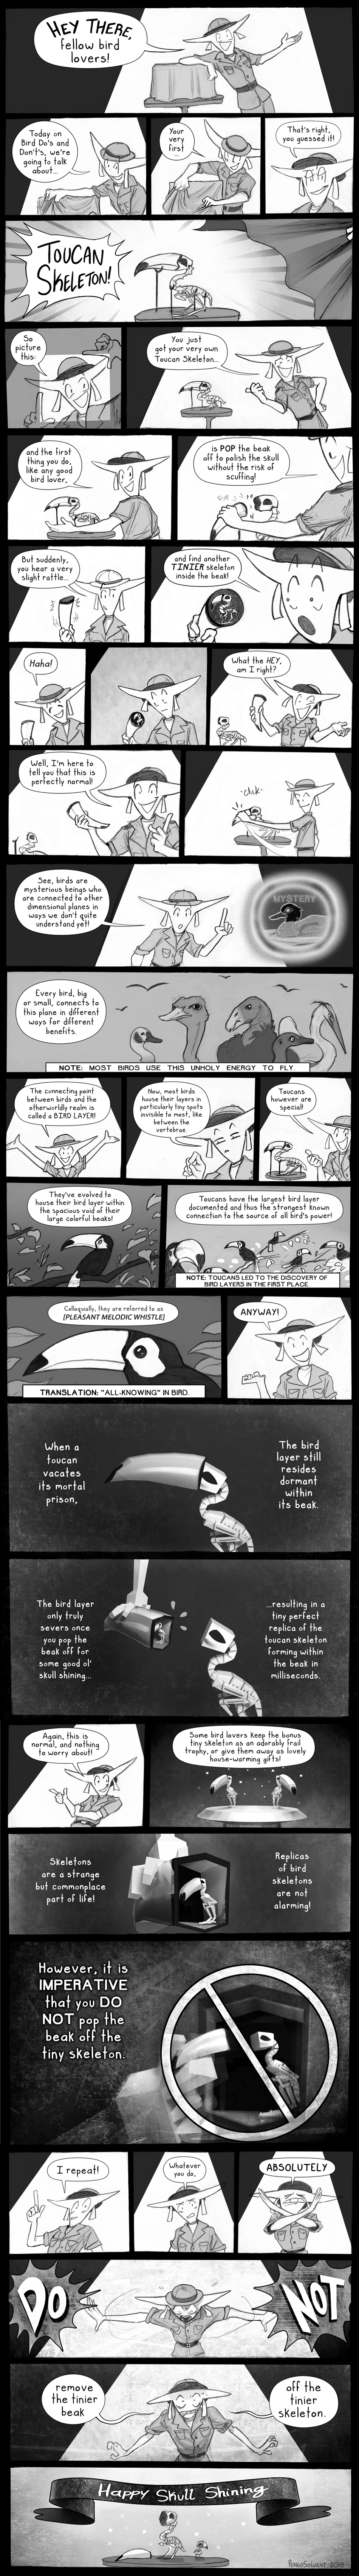 Bird Lovers Comic by pengosolvent